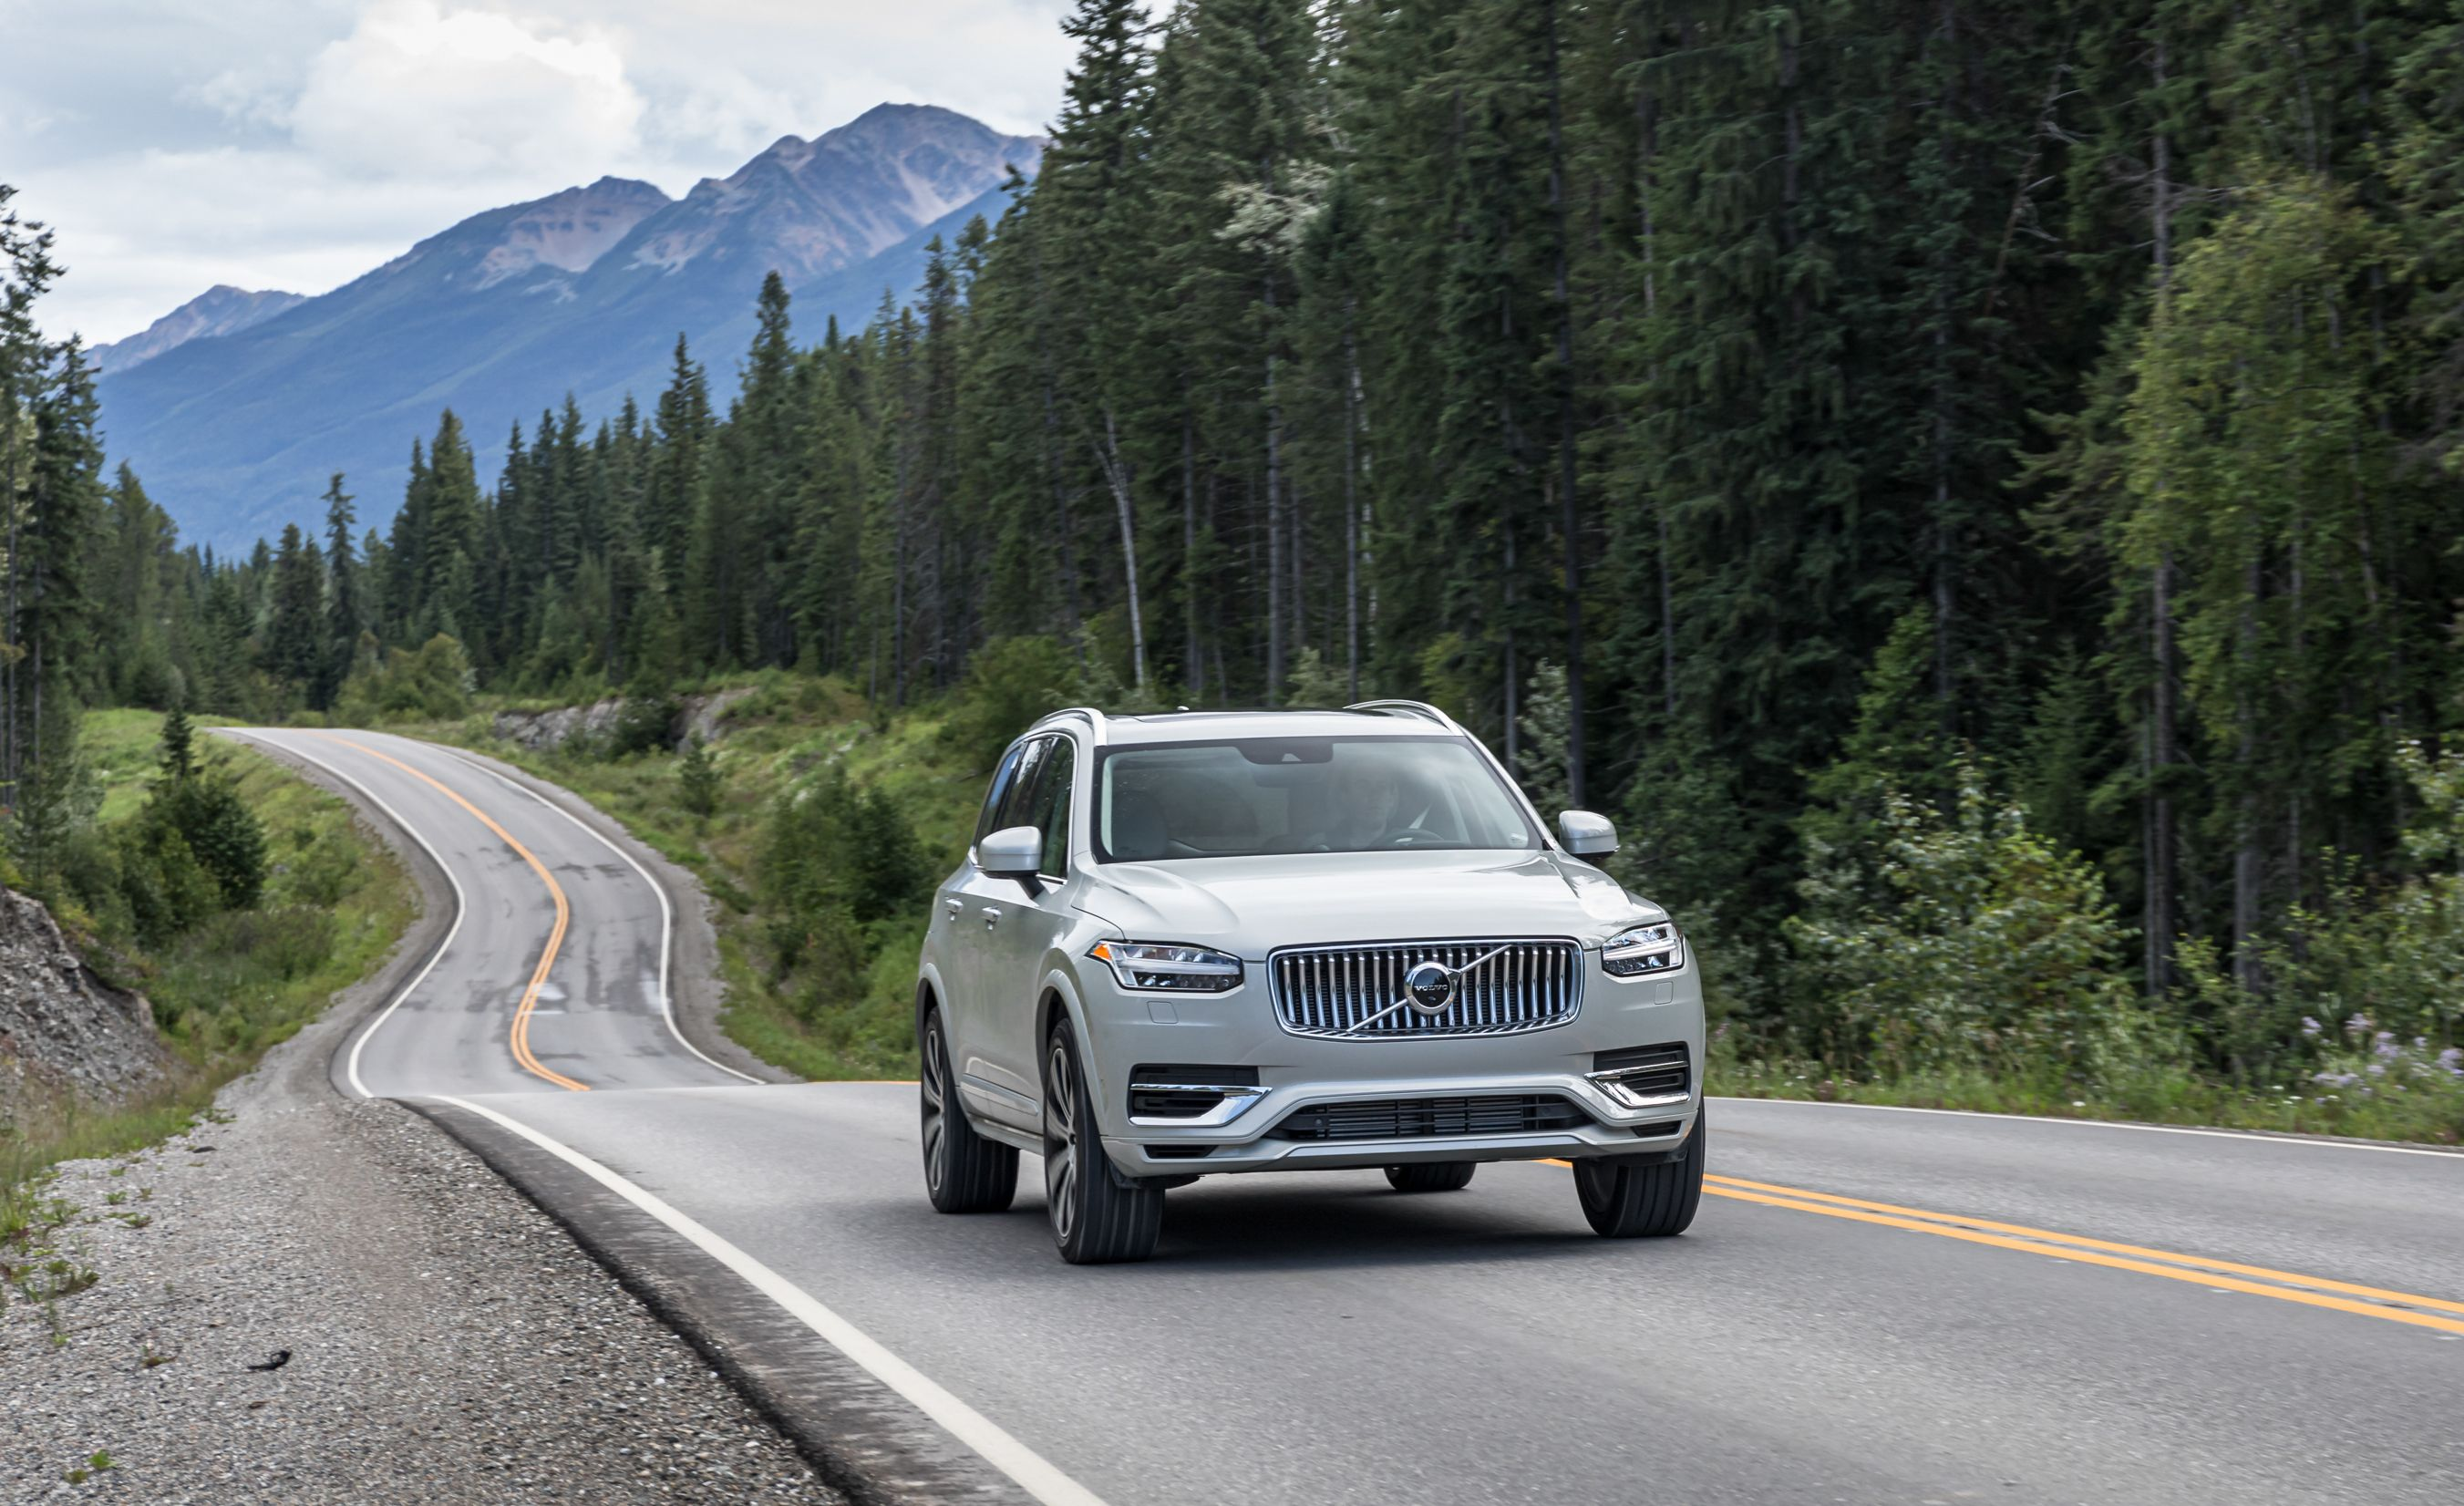 2020 Volvo Xc90 Driven The Changes Pile Up